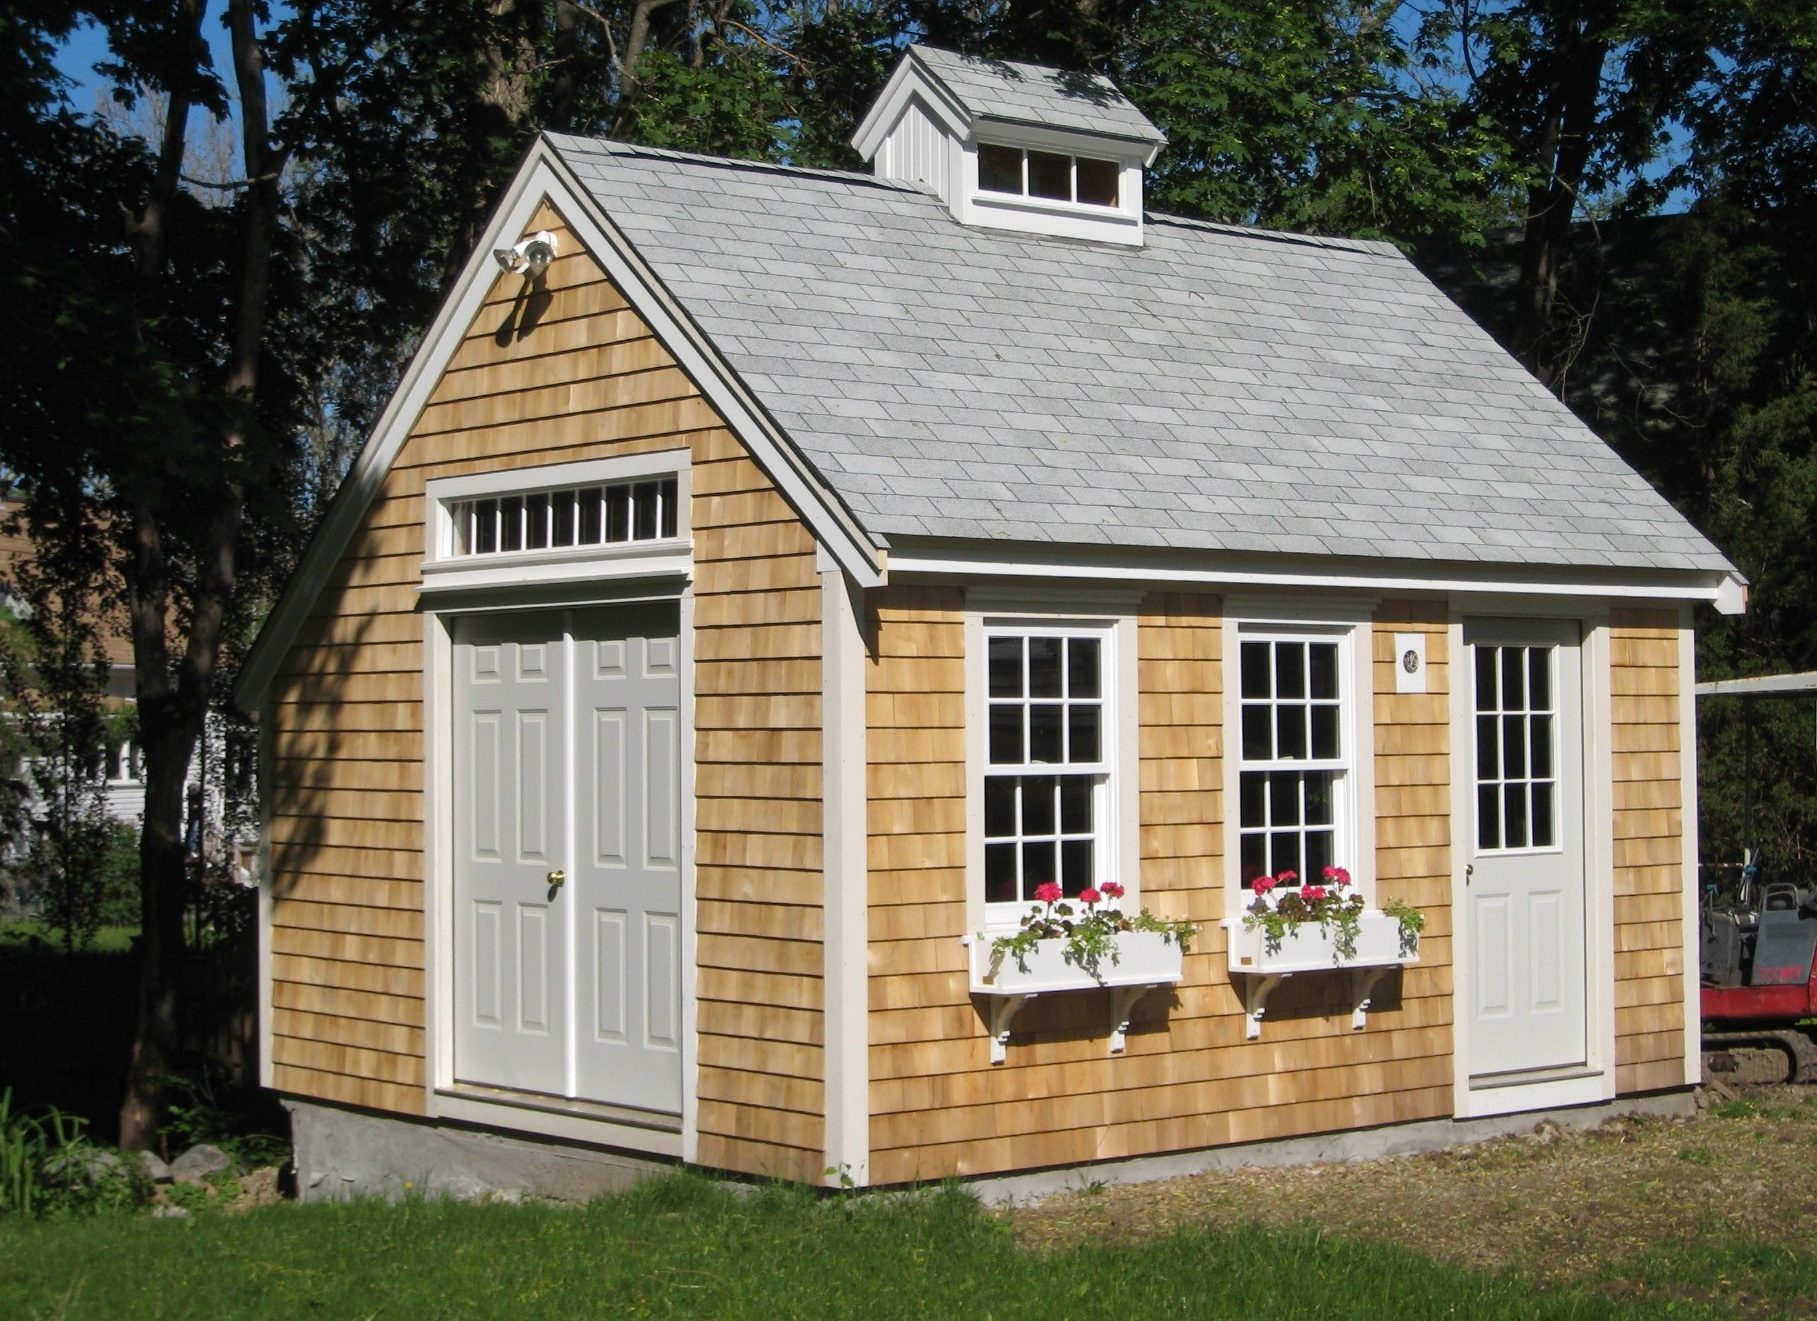 Fairytale backyards 30 magical garden sheds Shed home plans